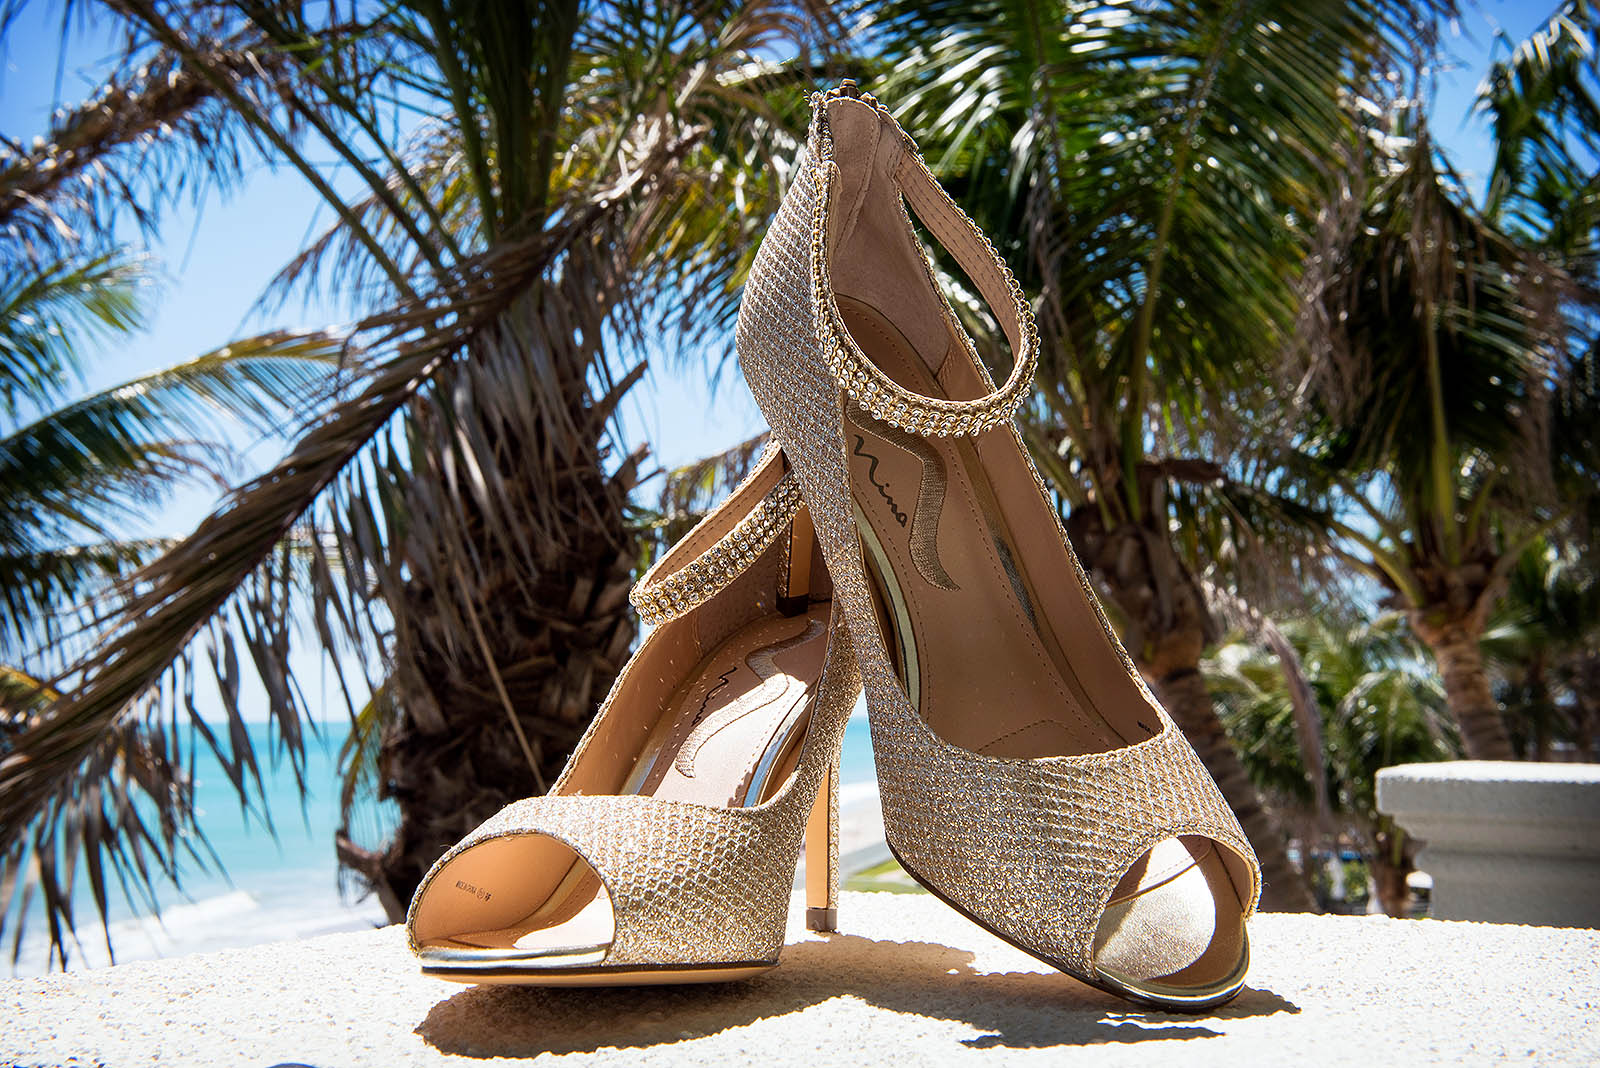 Beach Wedding Shoes Inspiration